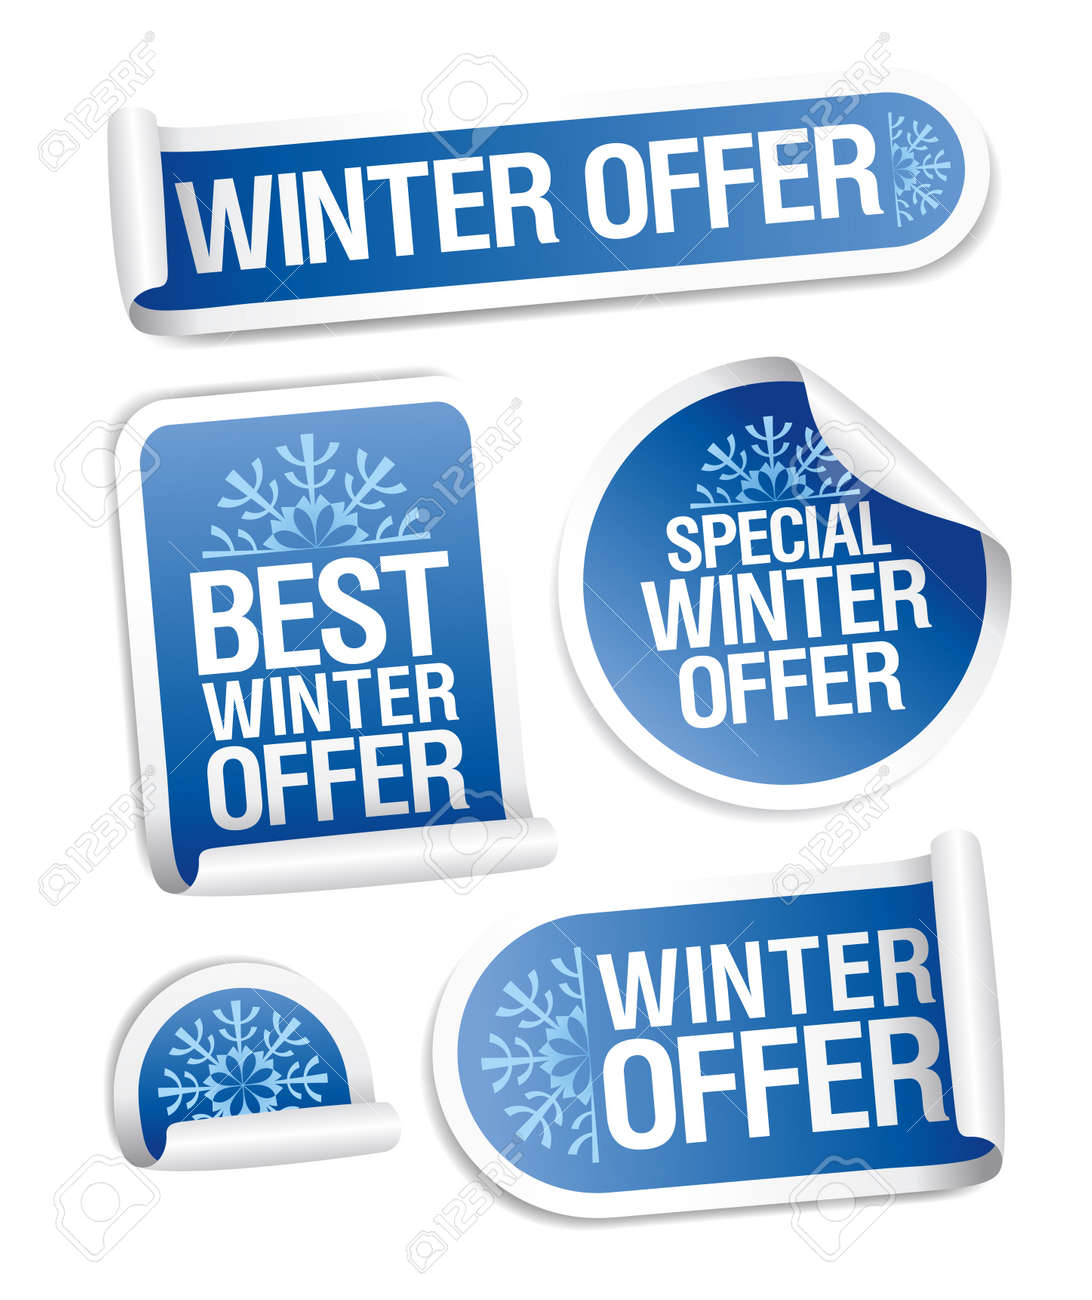 Special winter offer stickers set. Stock Vector - 11261948